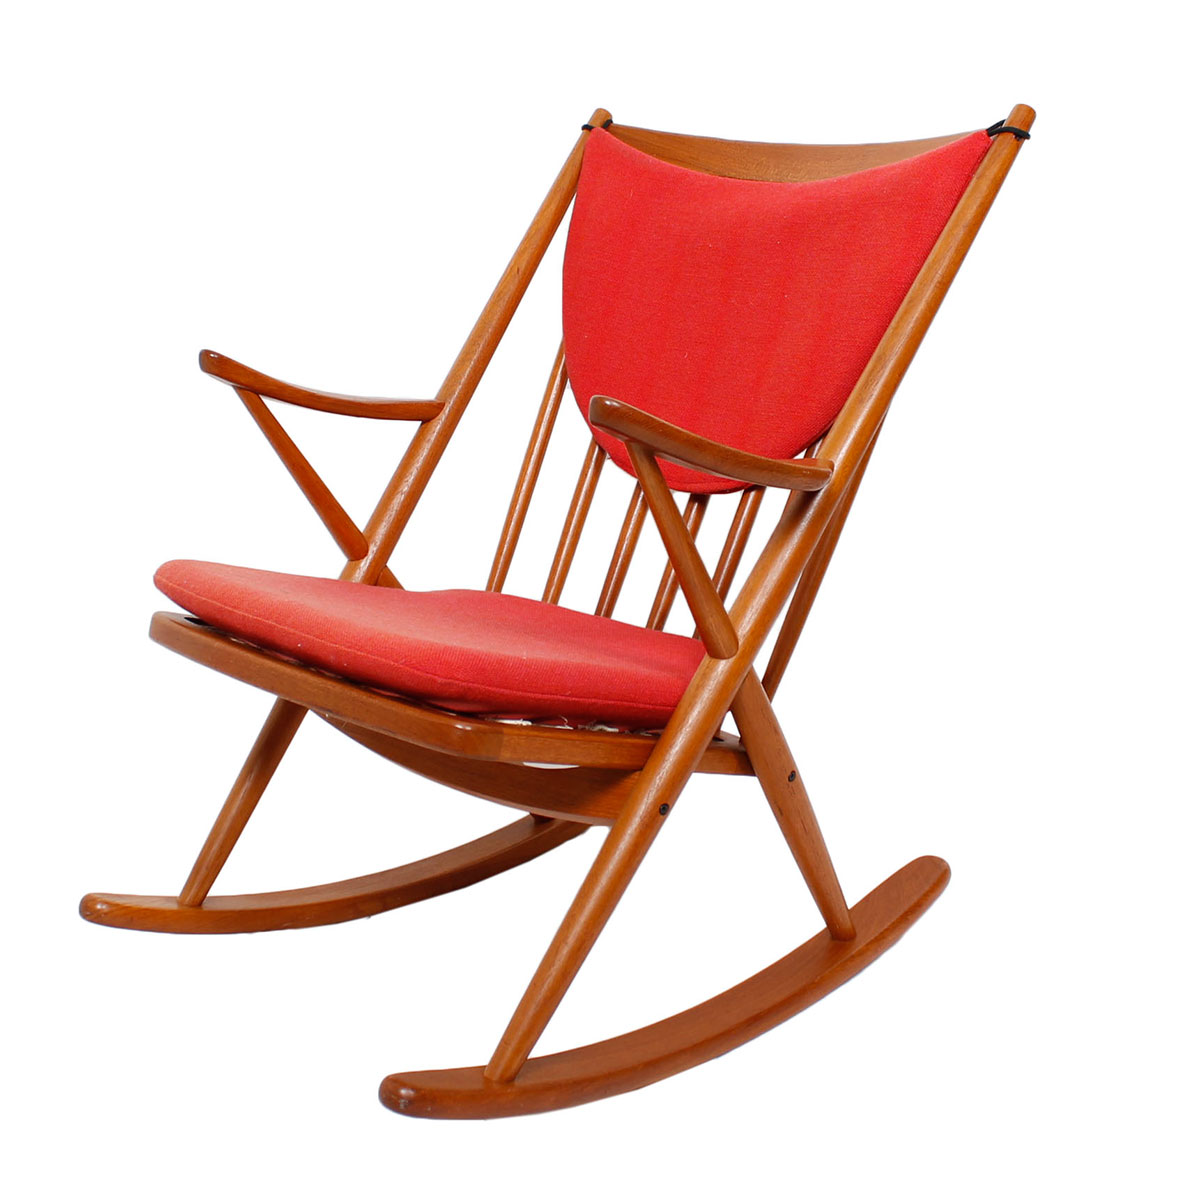 Bramin Danish Teak Designer Rocking Chair w/ Cushions